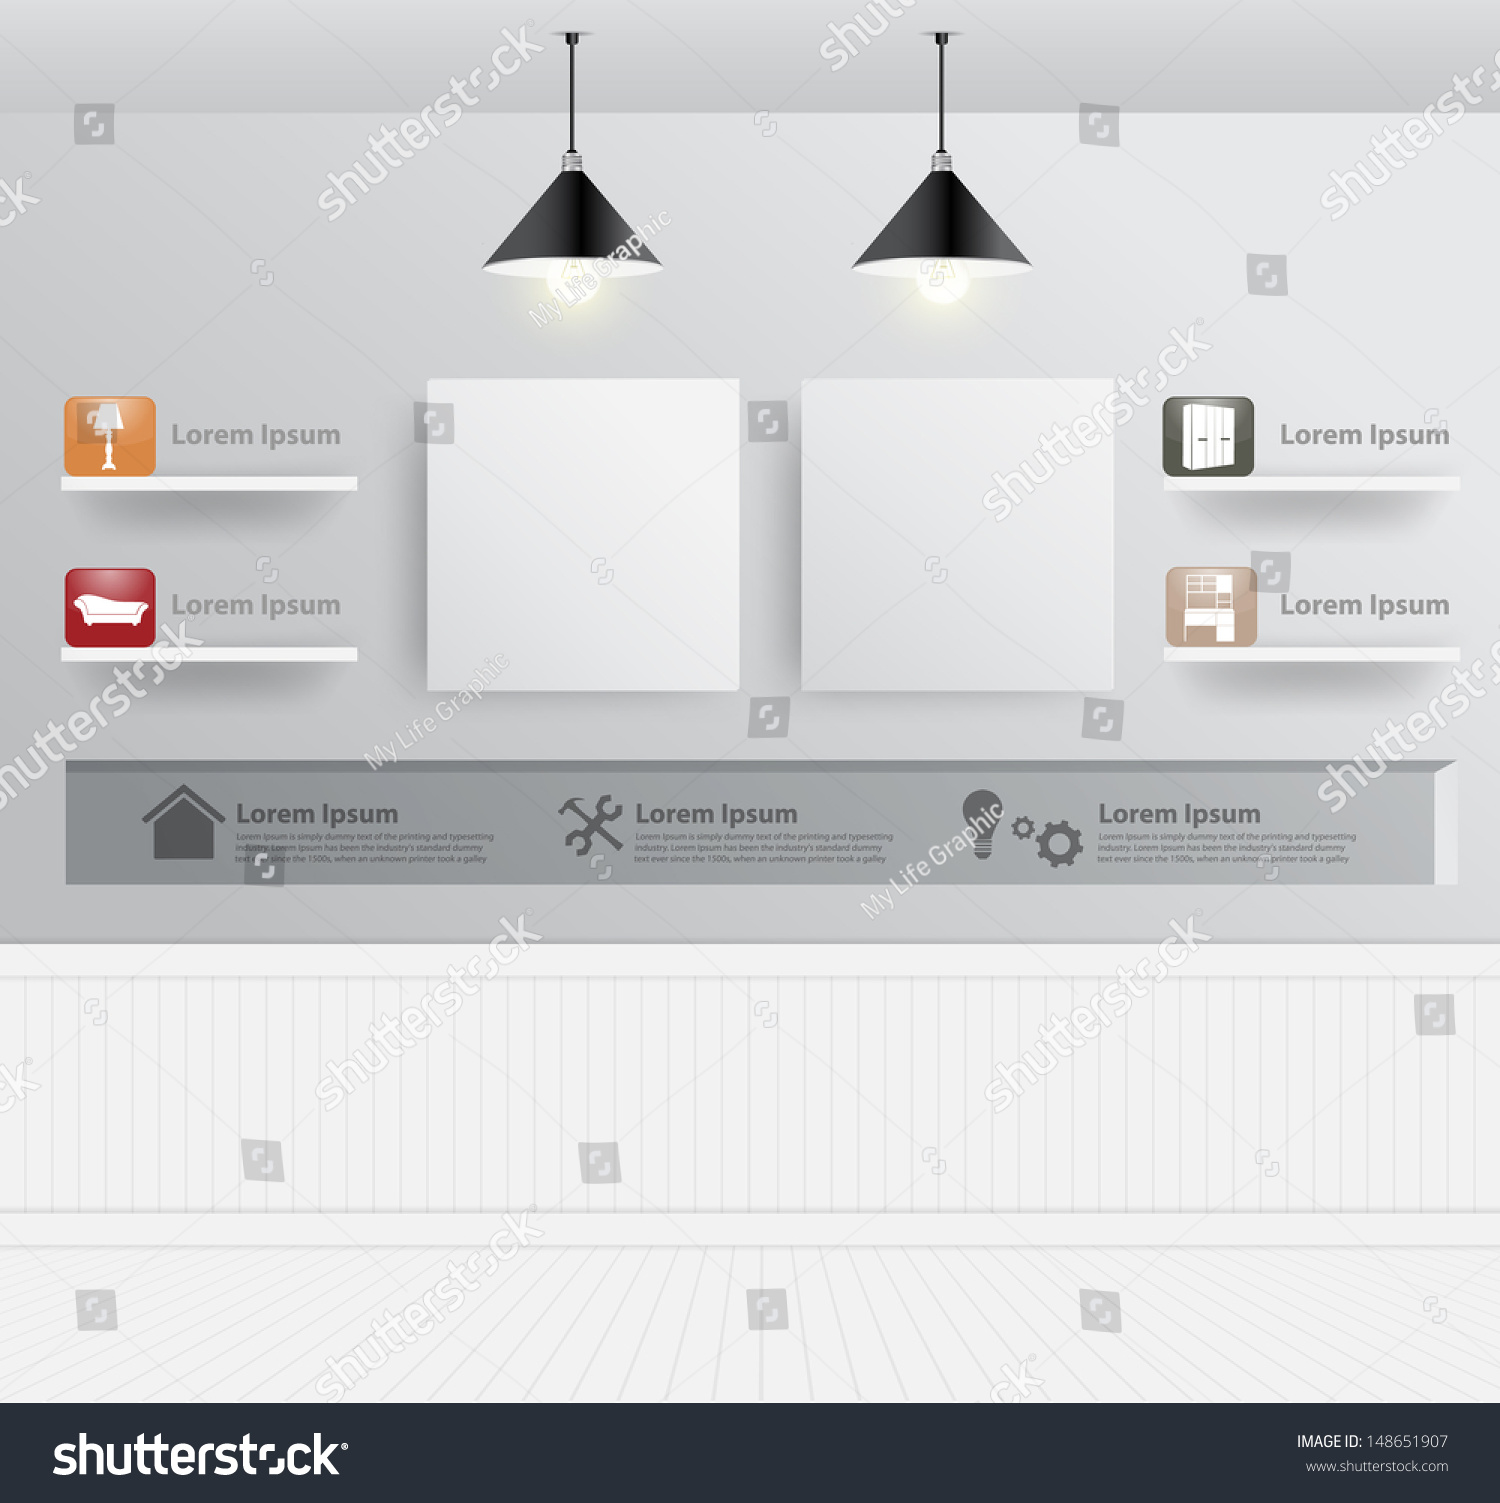 Interior Design With Home Furniture Icons Vector Illustration Modern Template